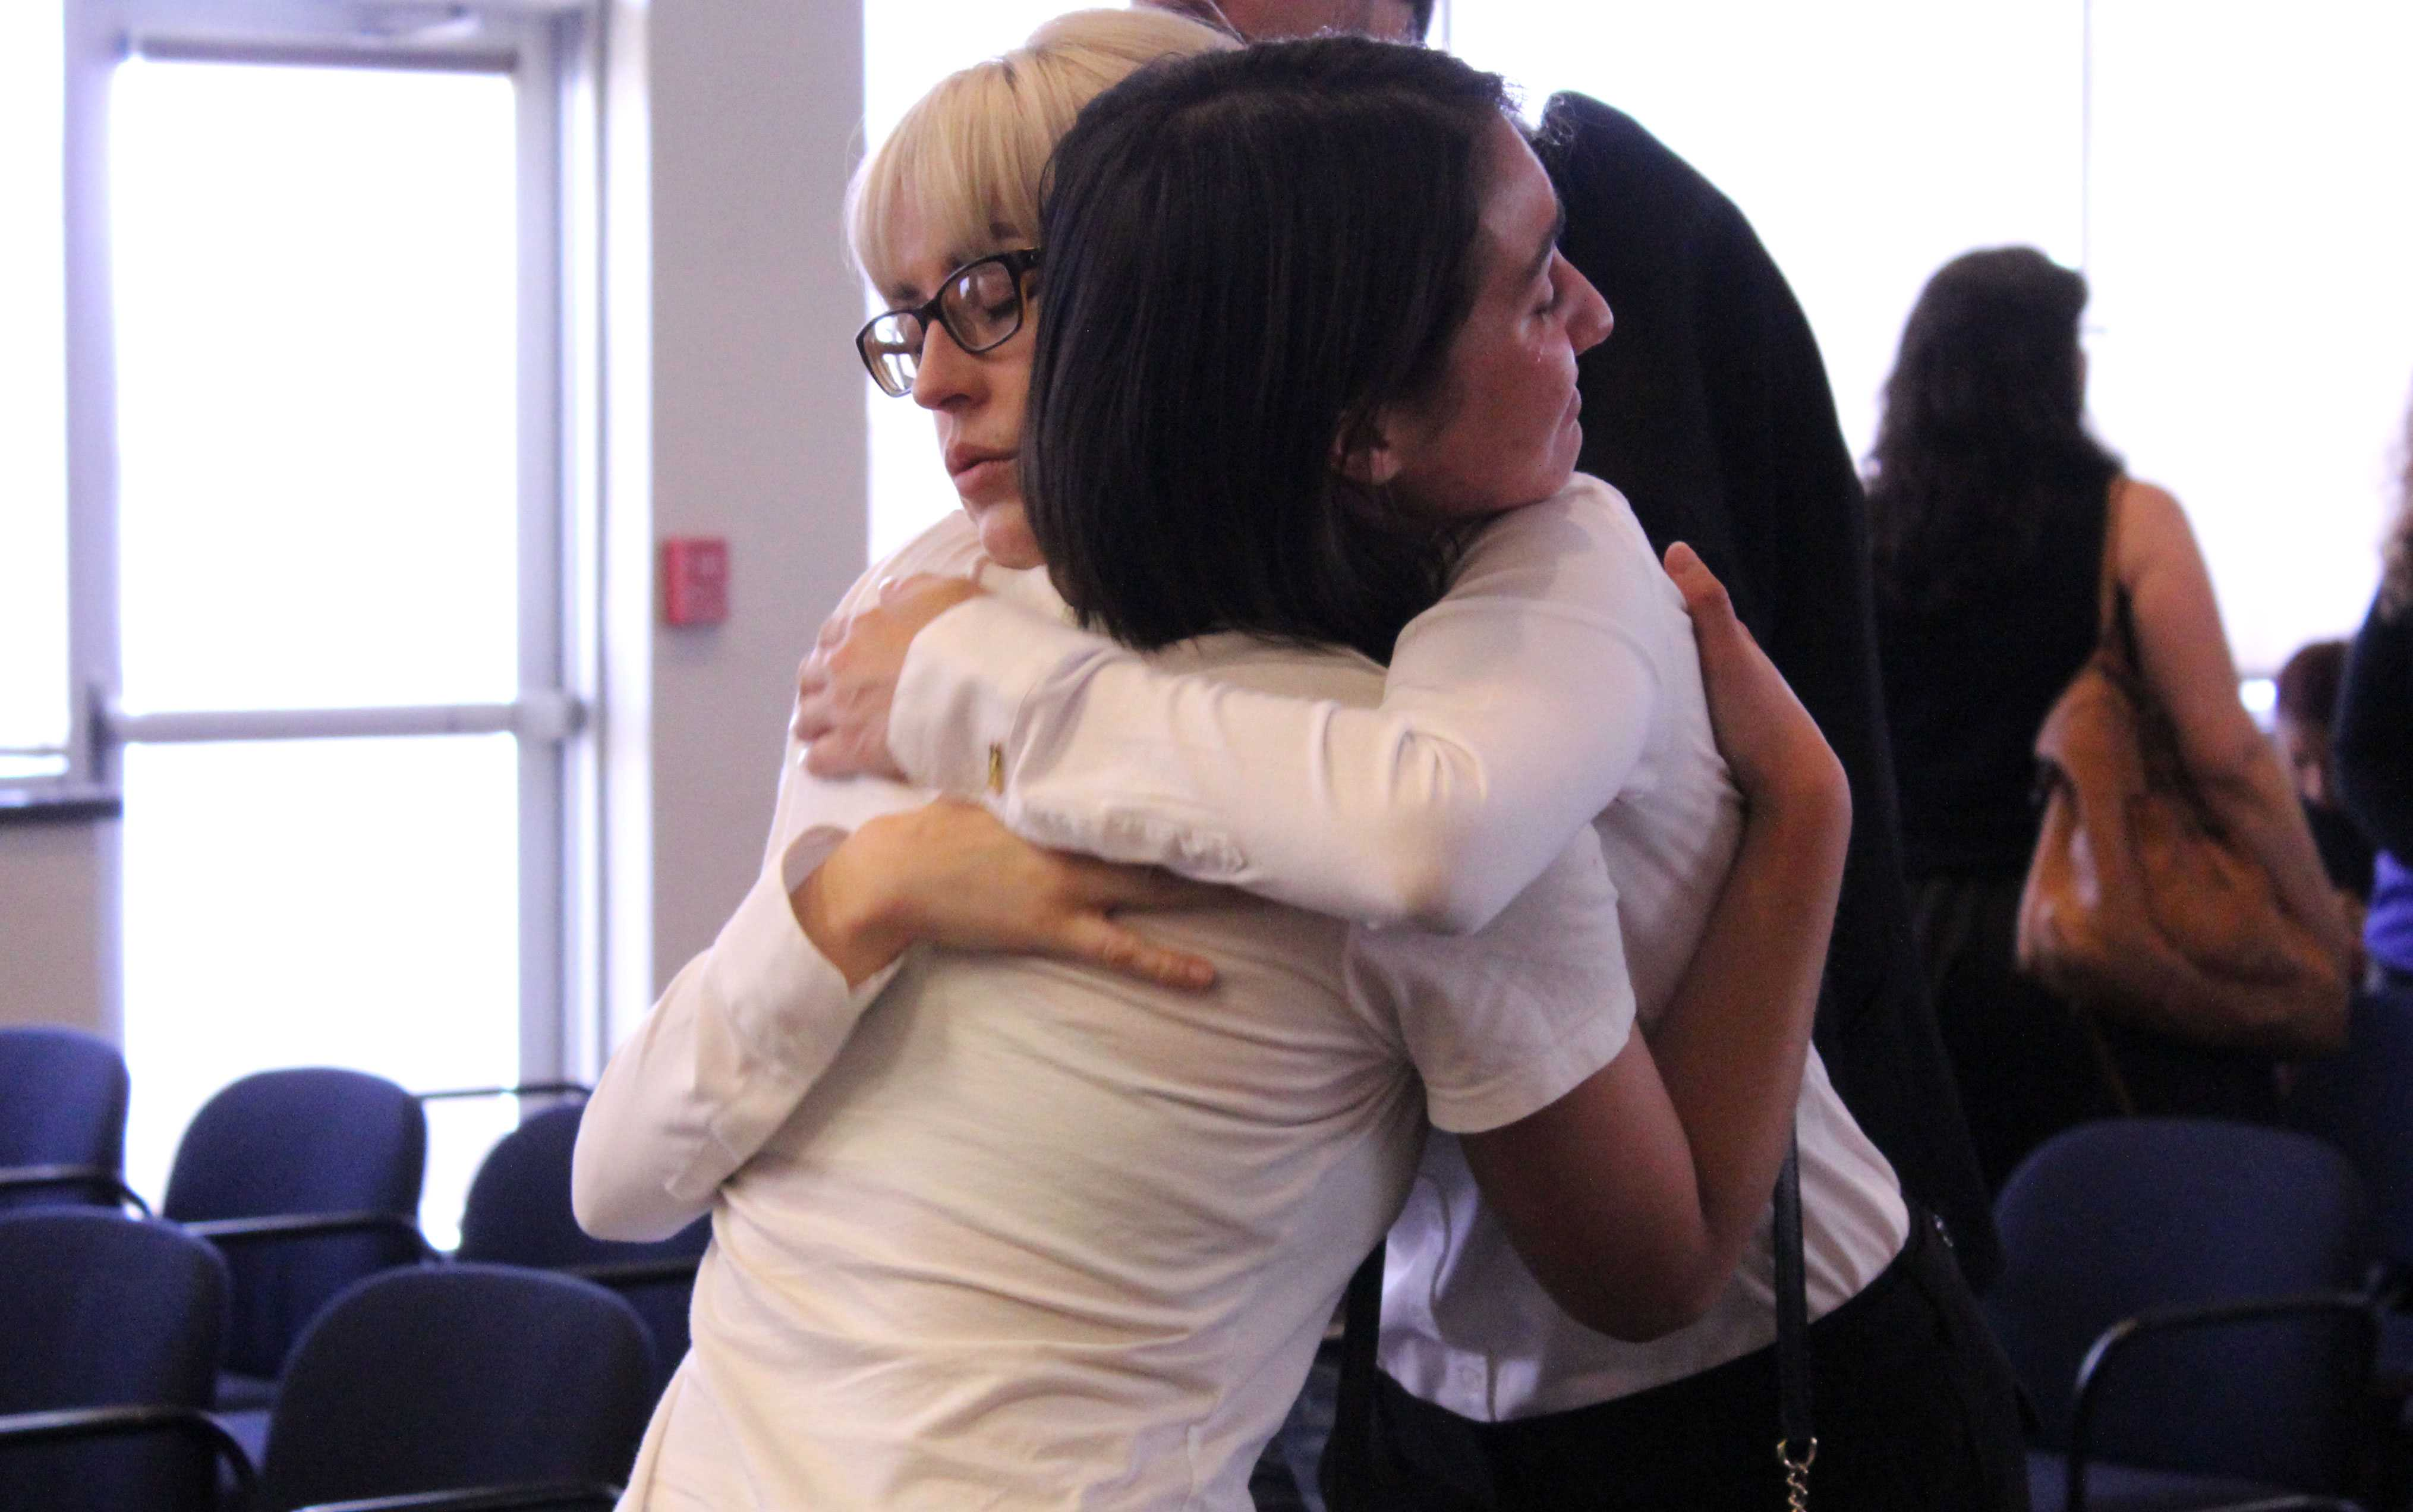 Melissa Stearns, close friend and P.A.S.S Session leader for Professor Foust, and former student console each other at Richard Foust's memorial service held at UTEP.